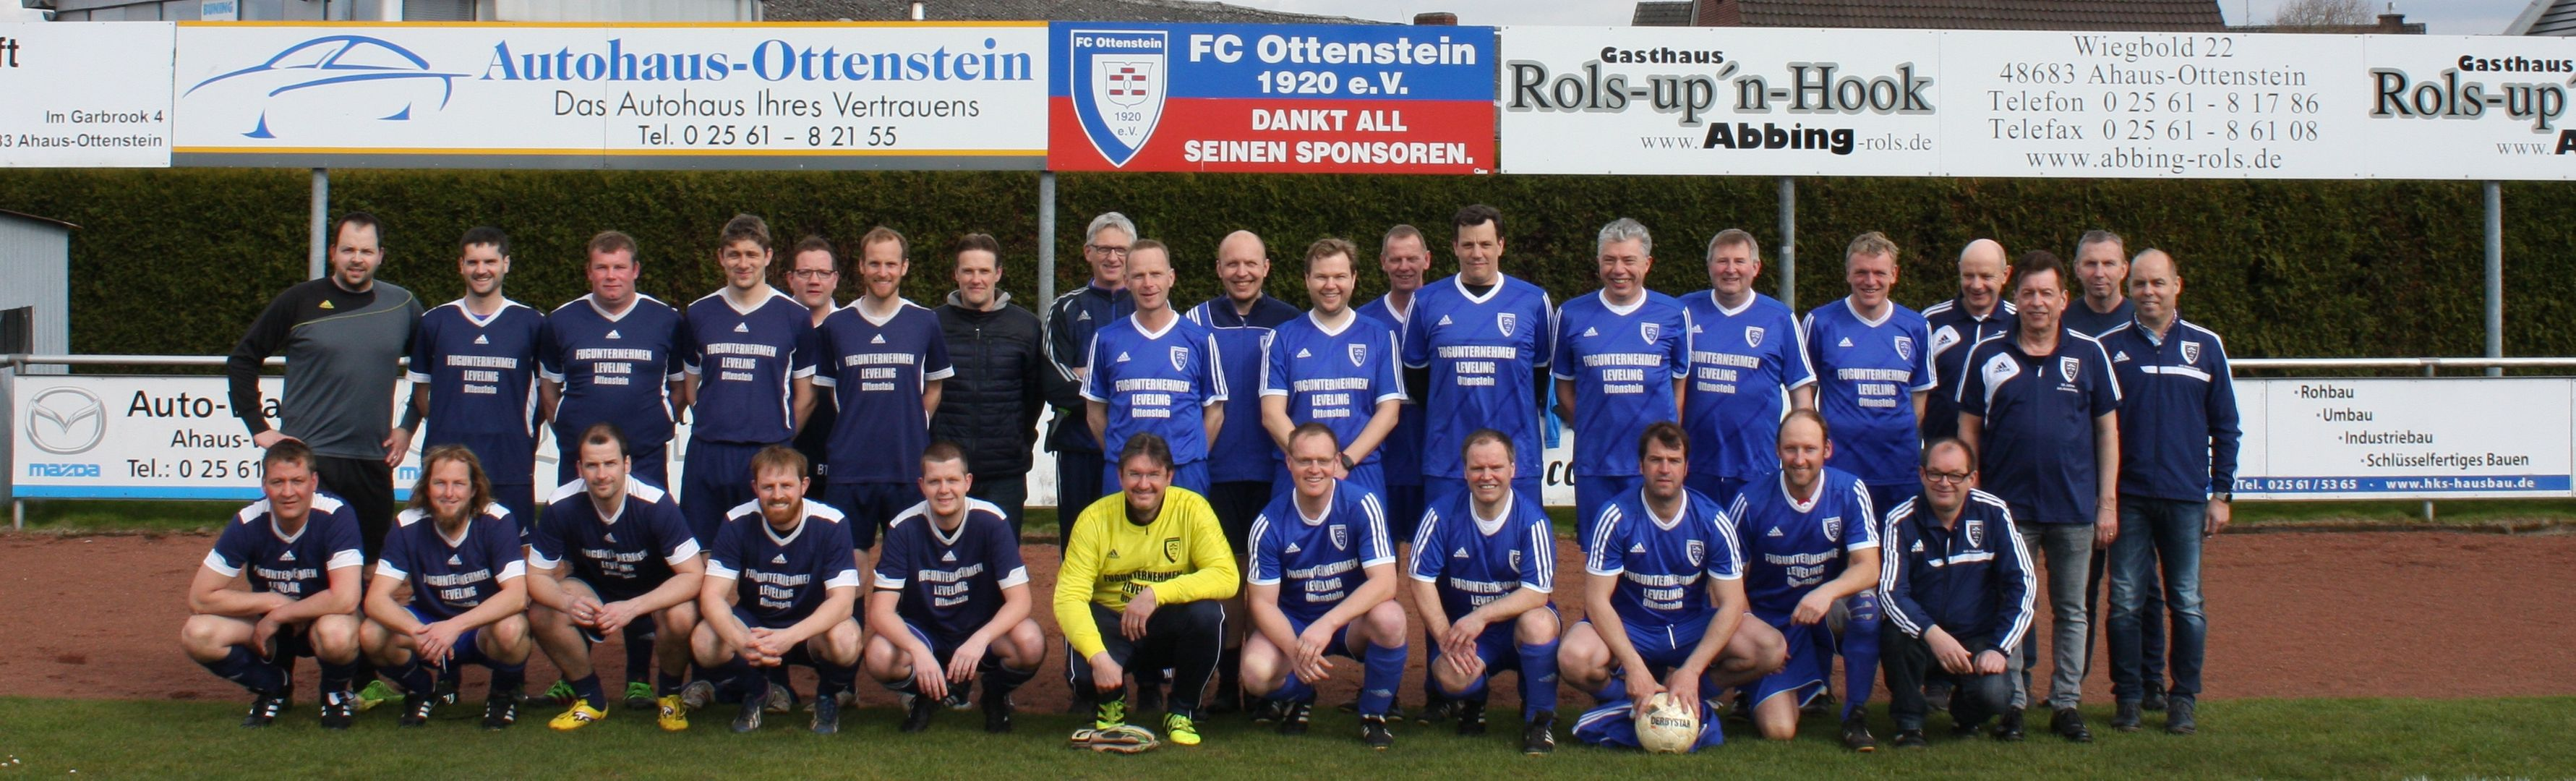 Altherrenmannschaft | FC Ottenstein 1920 e.V.